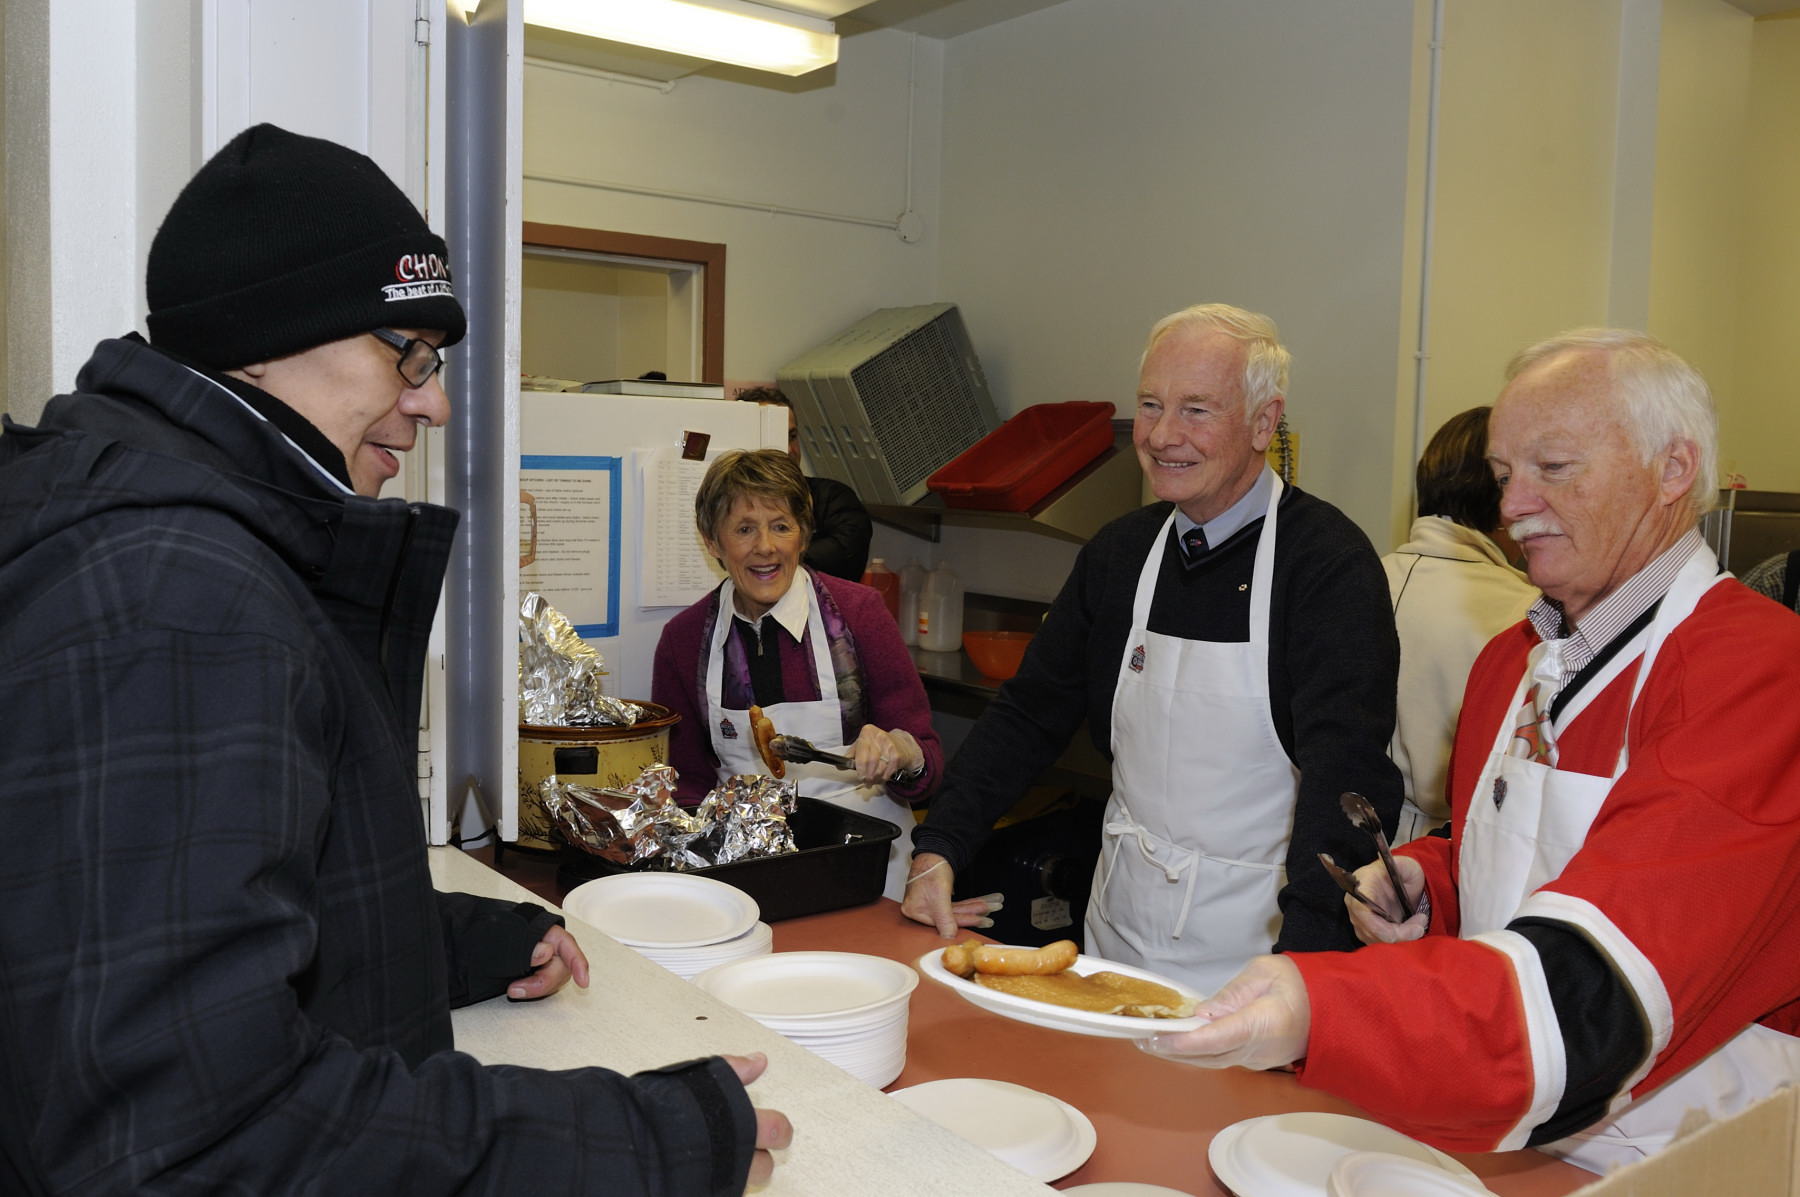 On the final day of their official visit to Yukon, Their Excellencies, accompanied by the Honourable Douglas George Phillips, attended a community pancake breakfast, in Whitehorse, hosted in honour of the 11th annual Hockey Day in Canada.